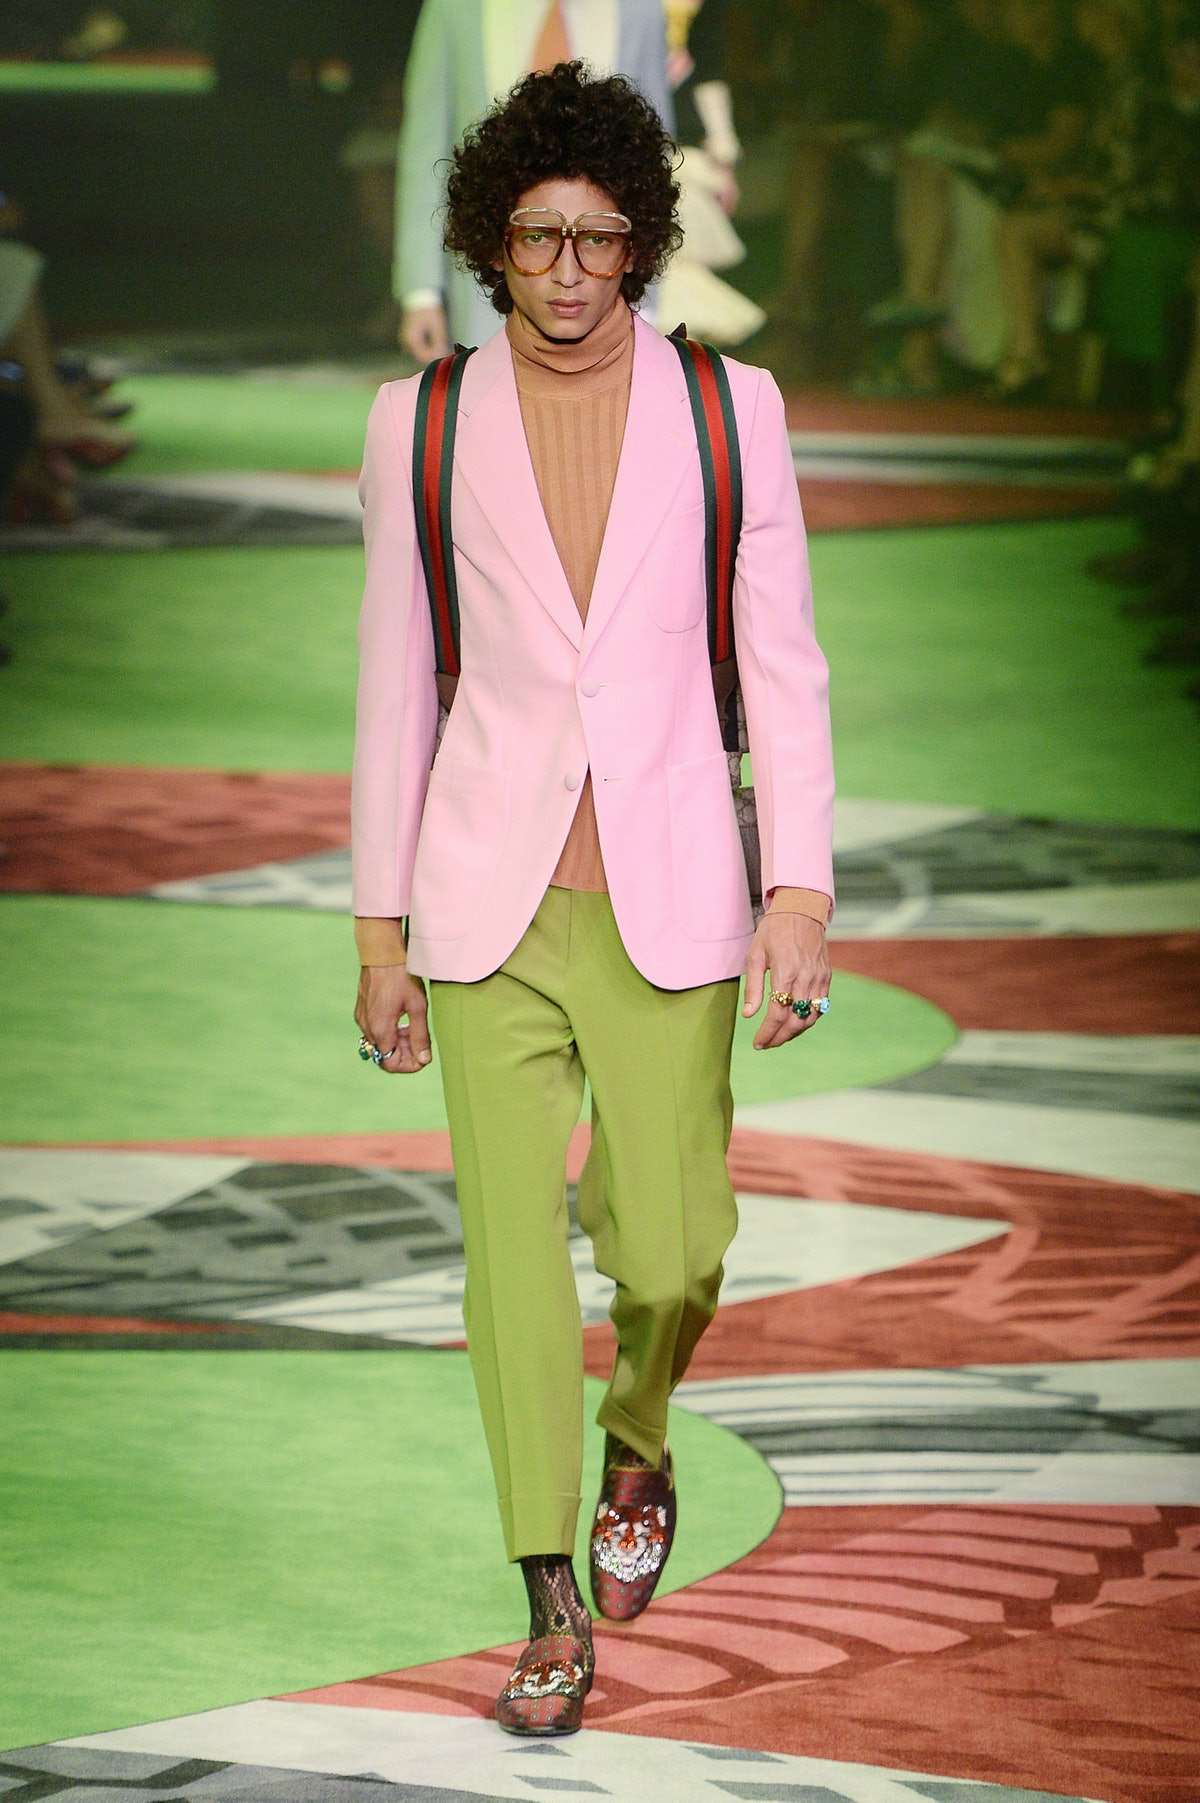 10 Grooming Lessons We Learned From The Men's Spring 2017 Shows